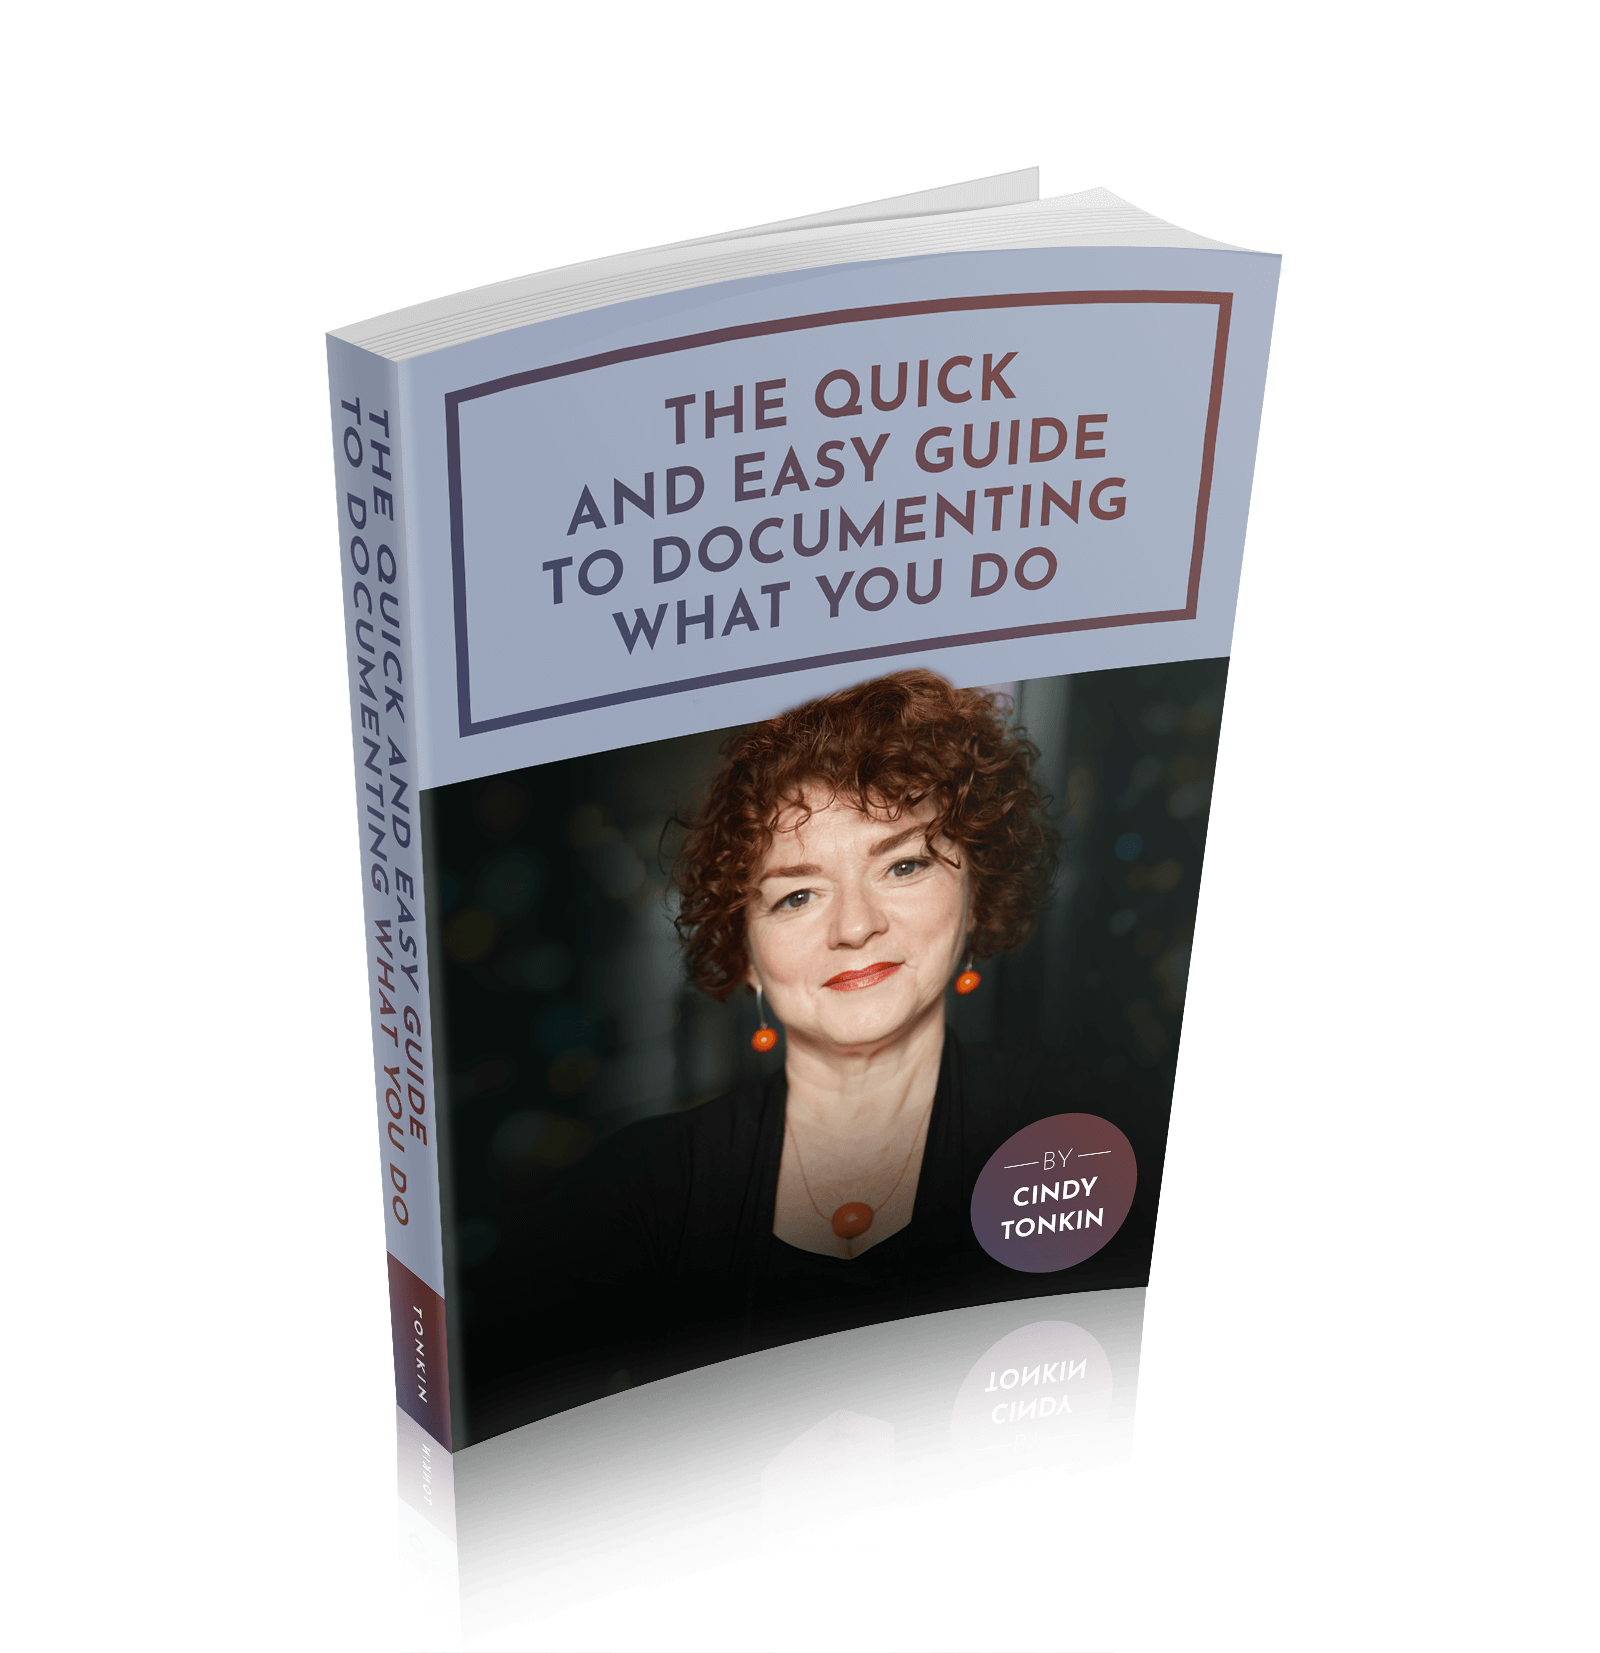 learn more political acumen: cindy tonkin the quick and easy guide to documenting what you do cover